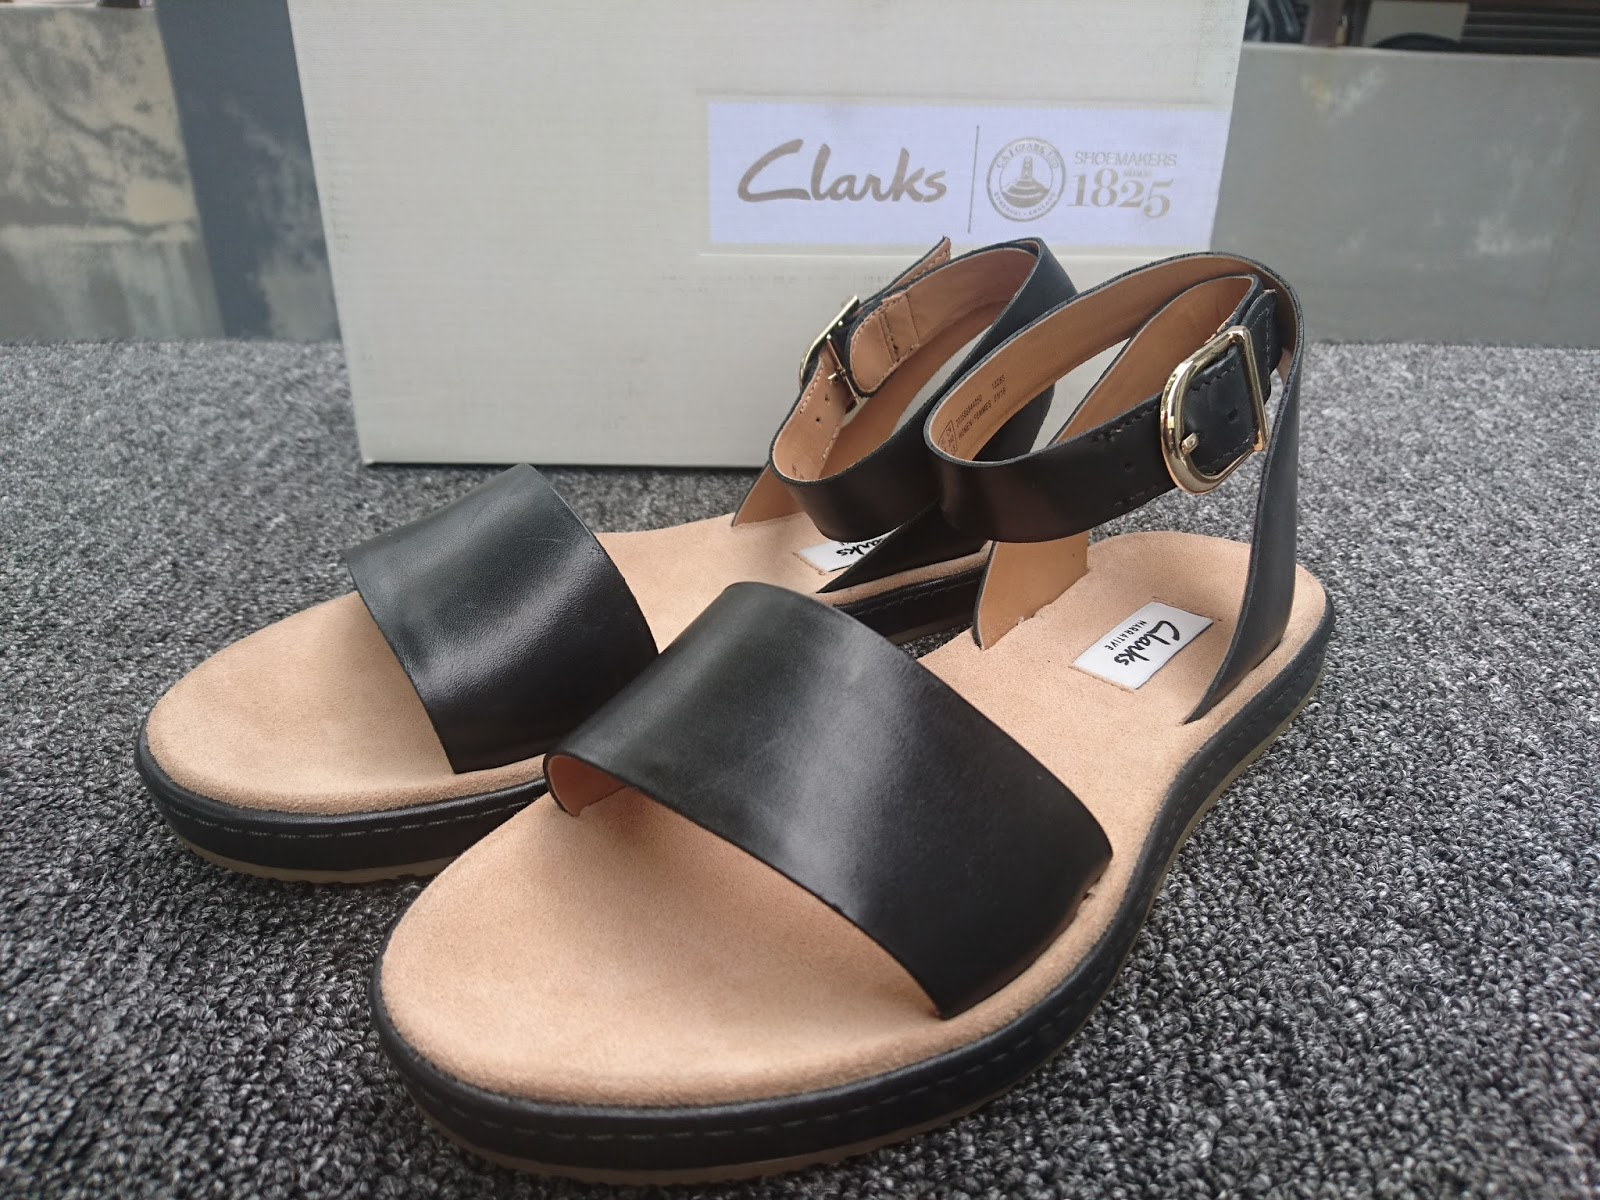 fb13afe83 Clarks Style  Romantic Moon Collection  Narritive 100% Authentic Brand new  in box Full leather Black colour Ankle strap flat sandals Elasticated  buckle ...